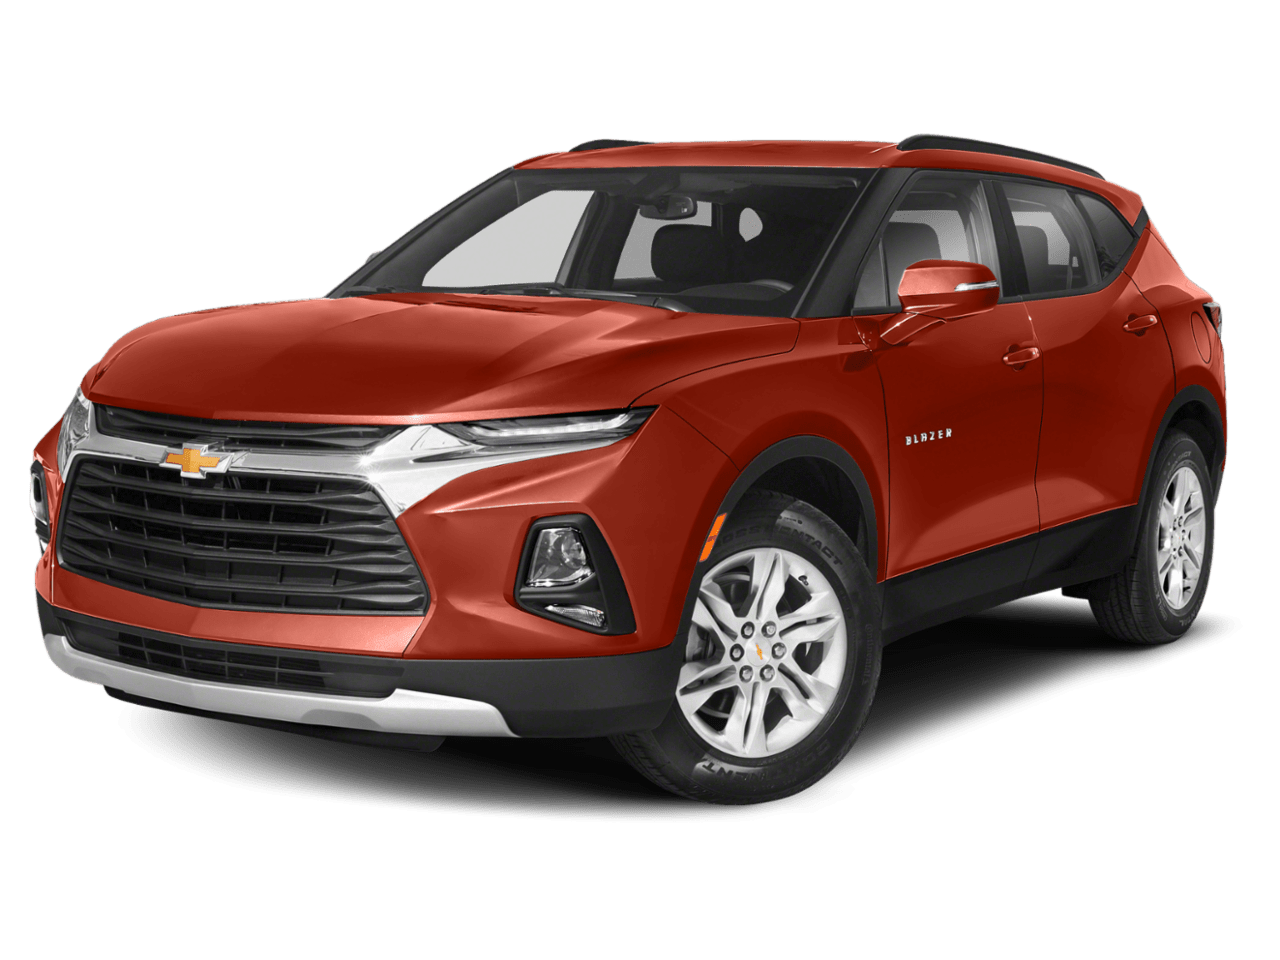 2021 chevrolet blazer | birchwood automotive group